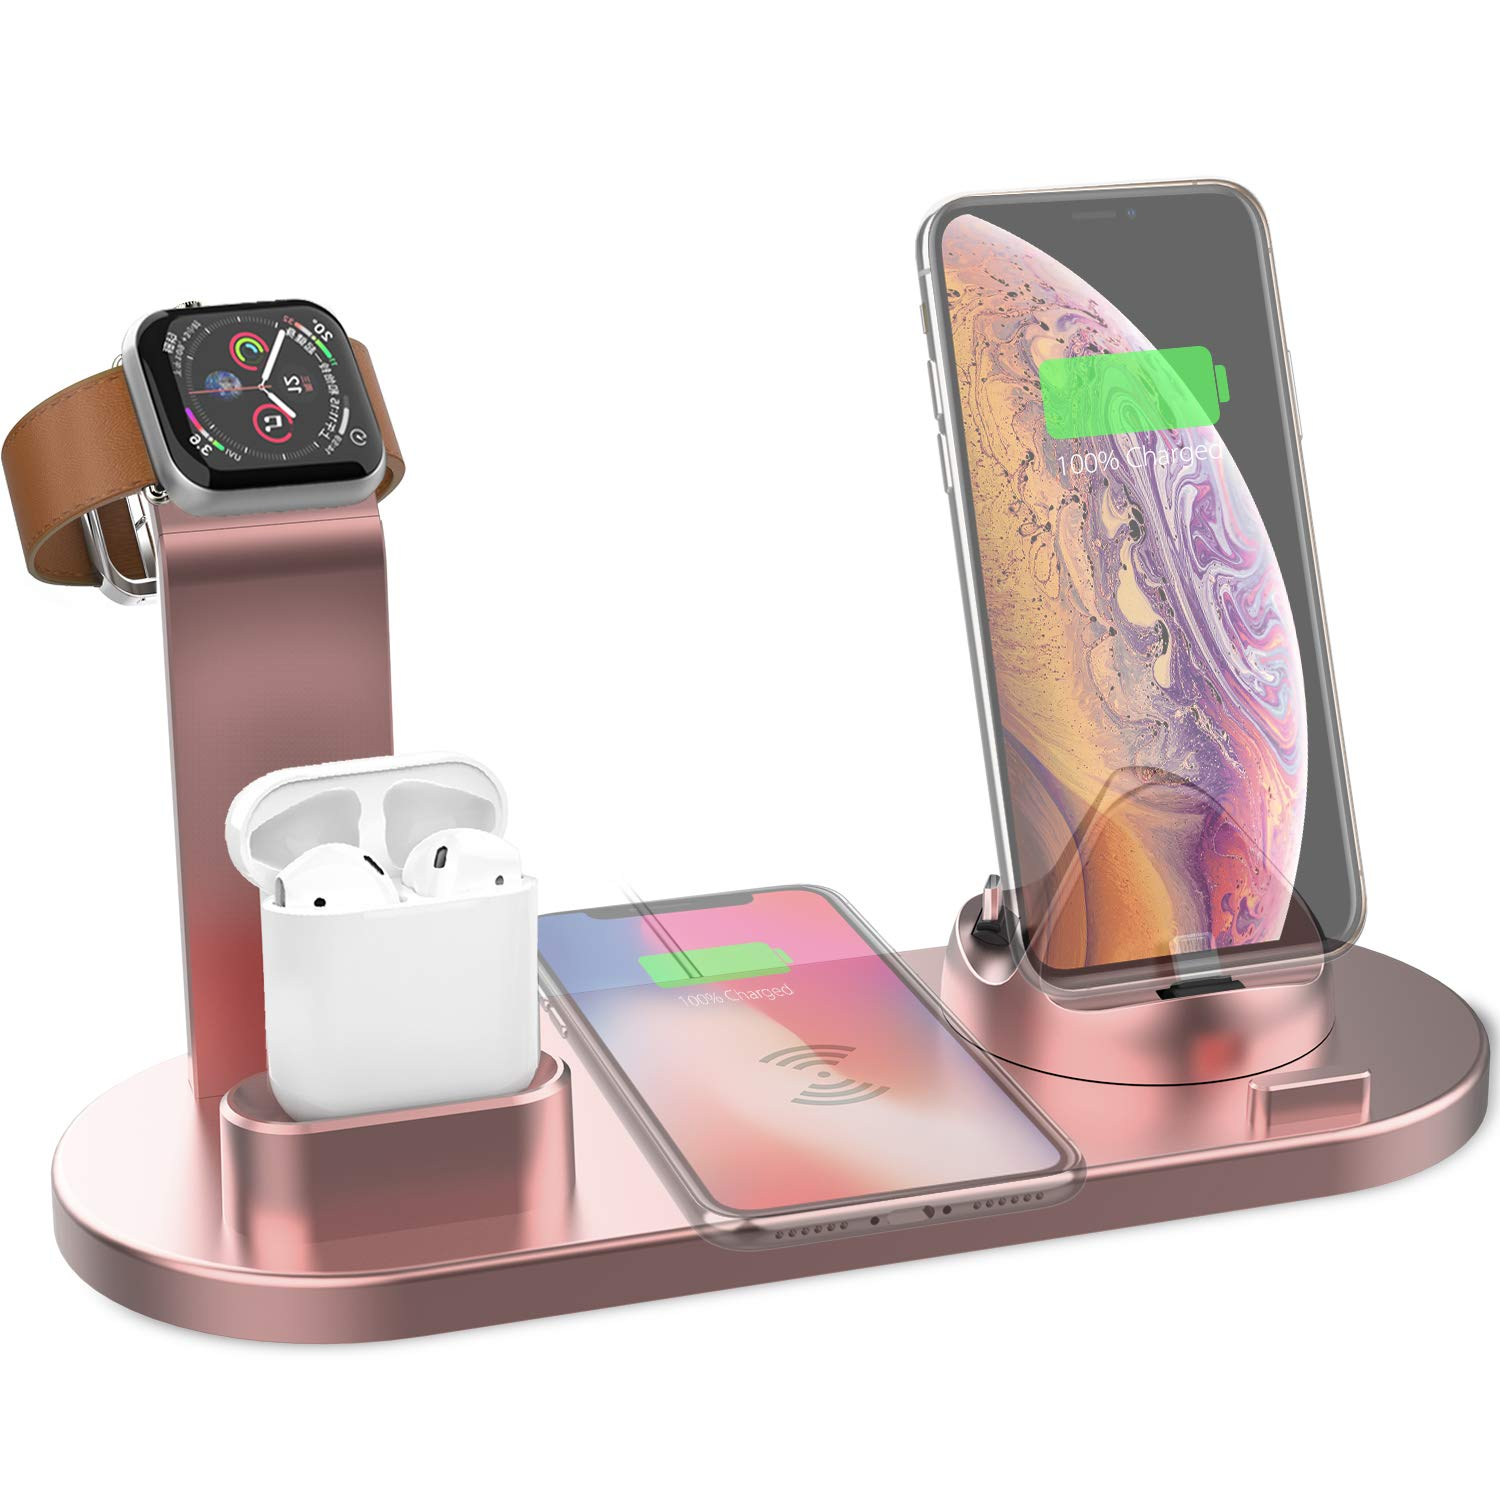 Yestan Wireless Charger 4 in 1 Wireless Charging Dock Compatible with Apple Watch and Airpods Charging Station Qi Fast Wireless Charging Stand Compatible iPhone X XS XR Xs Max 8 8 Plus Rose Gold by Yestan